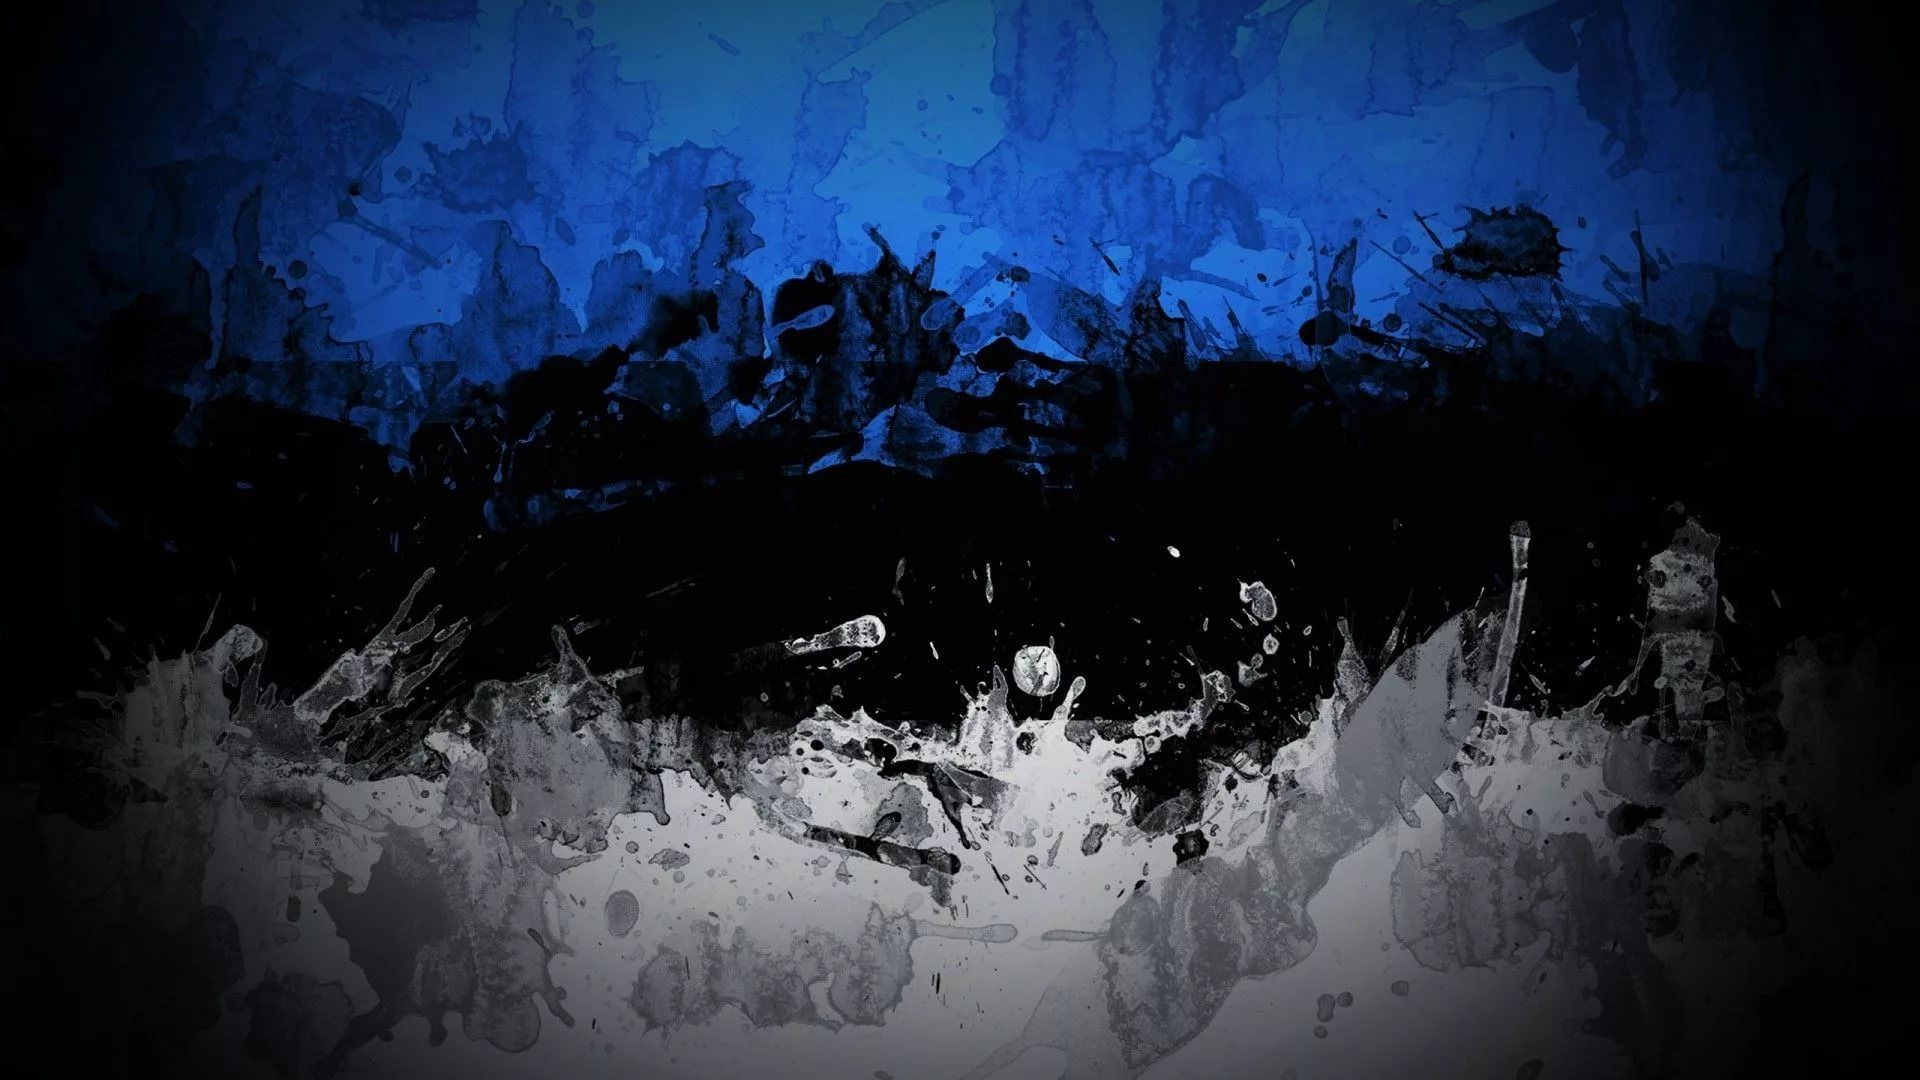 Black And Blue 1920x1080 wallpaper